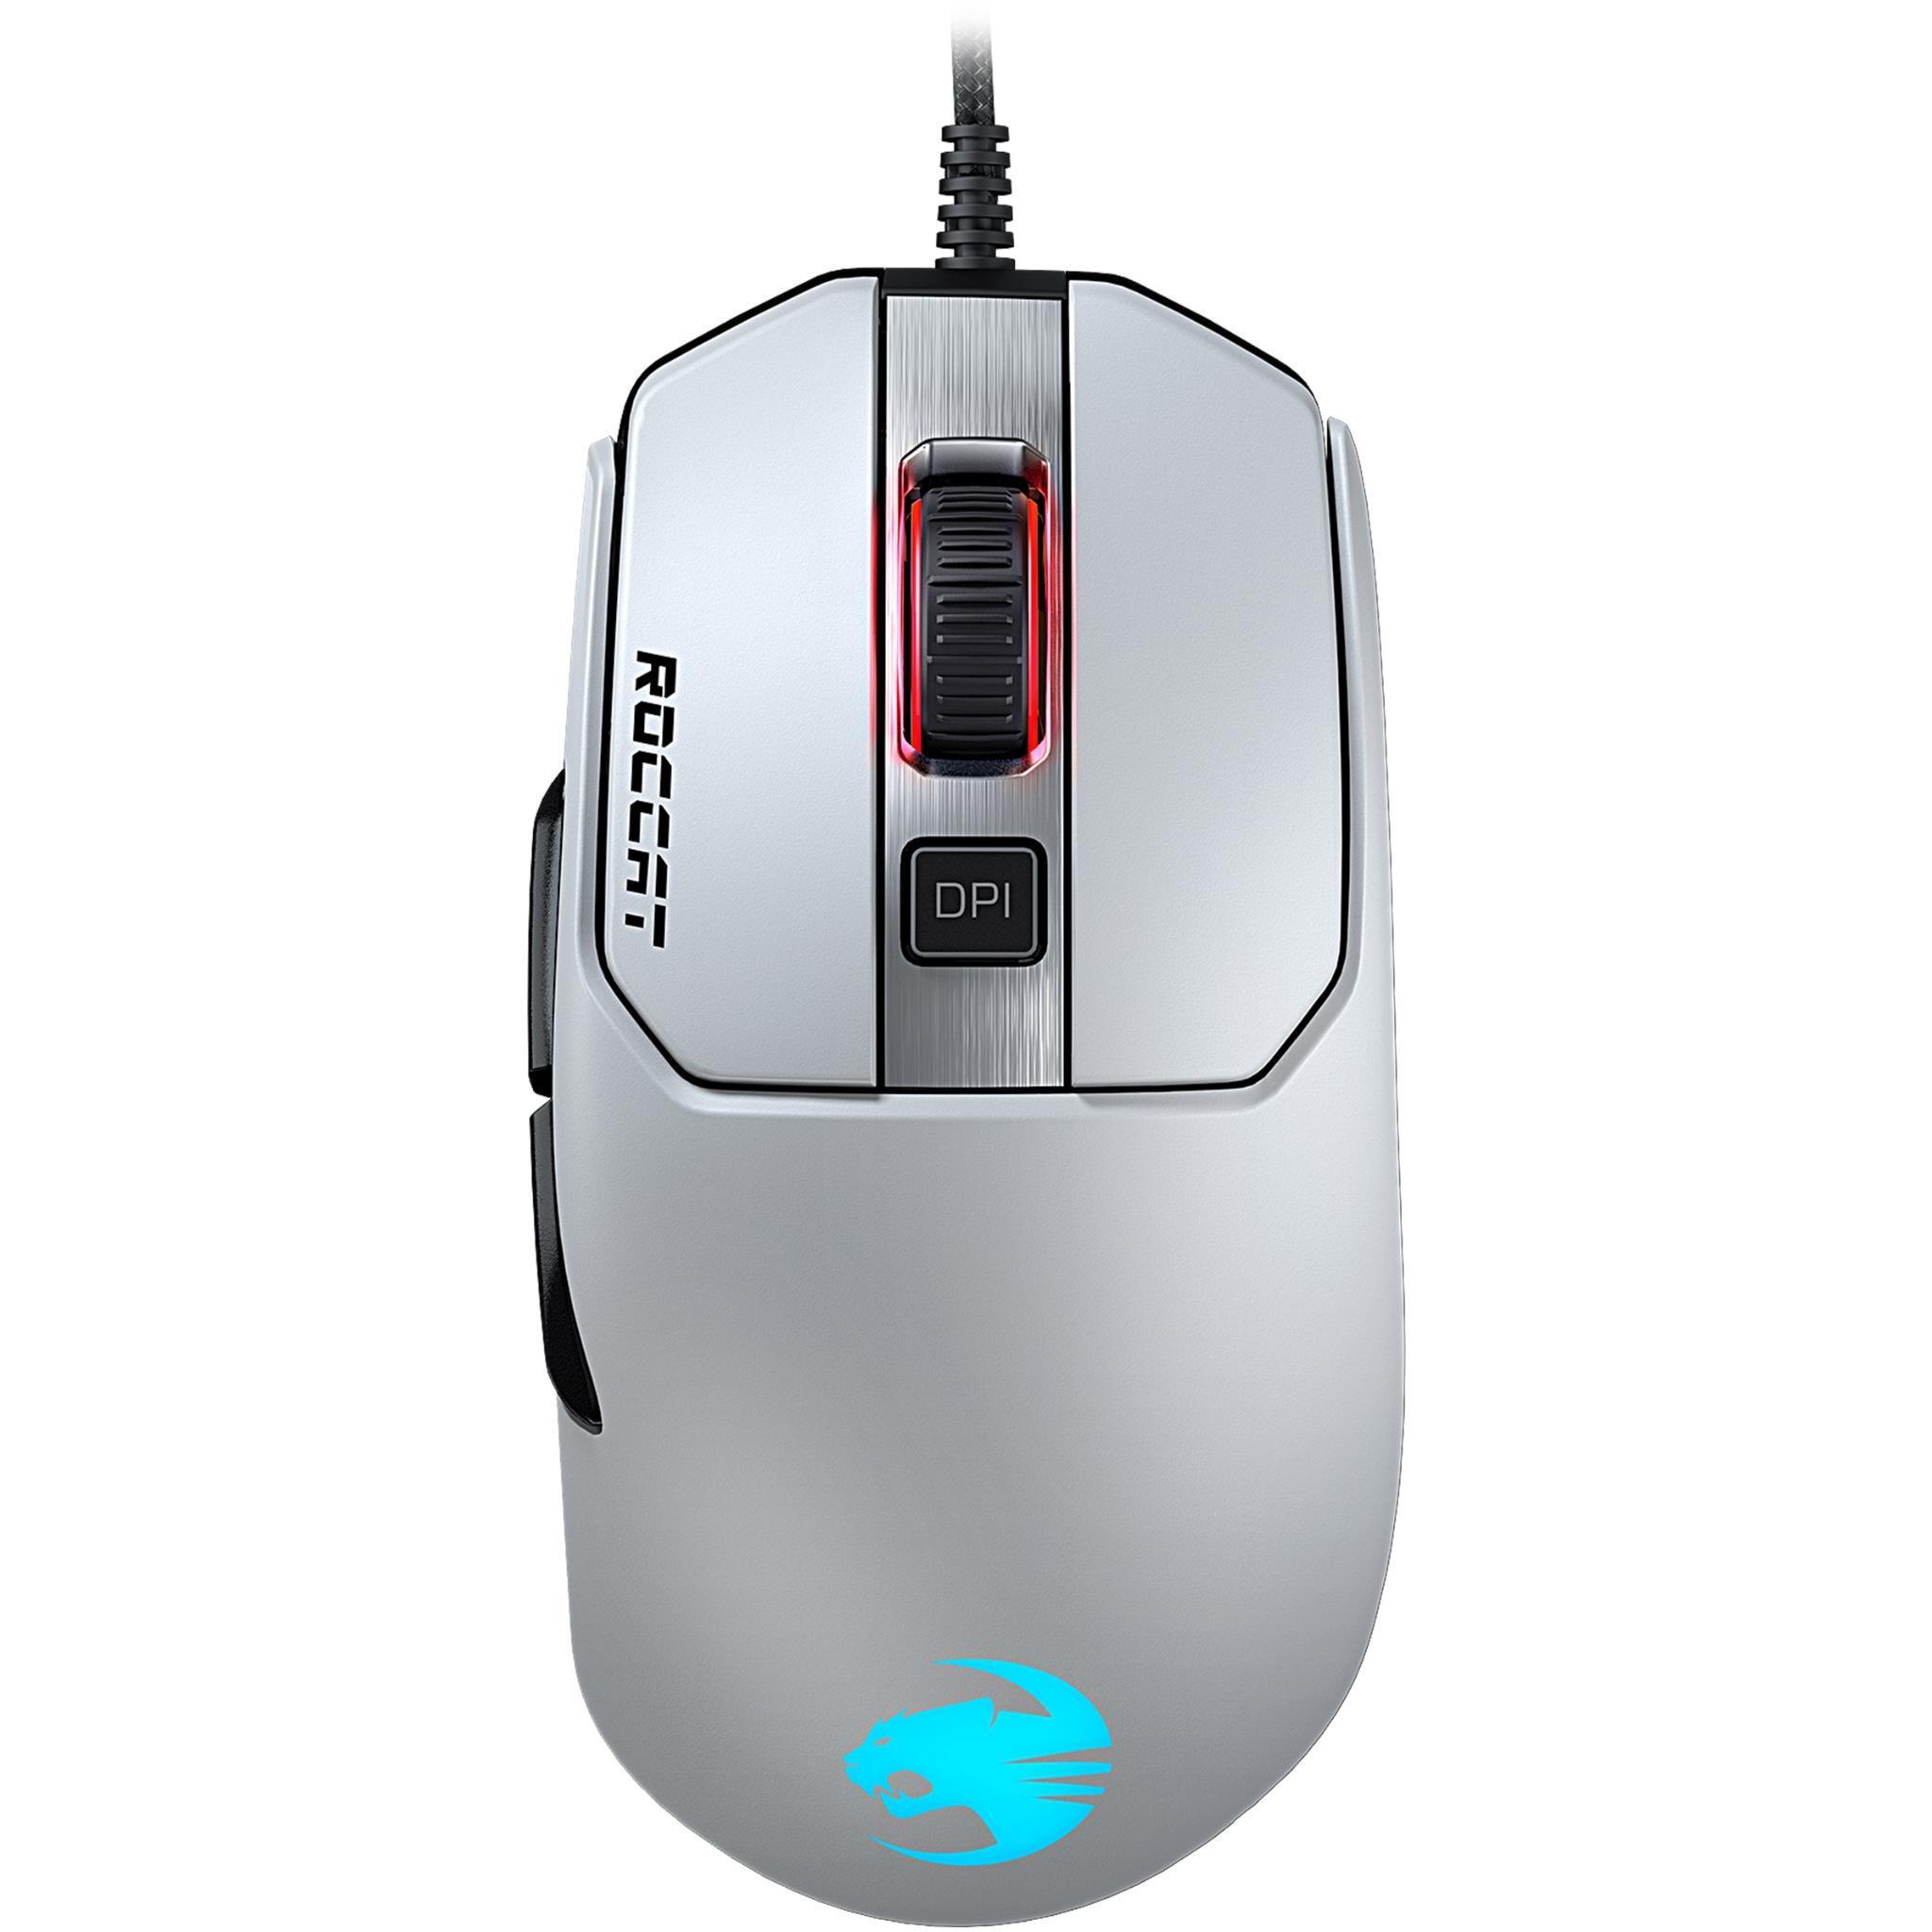 ROCCAT Kain 122 AIMO RGB Gaming Mouse (White)